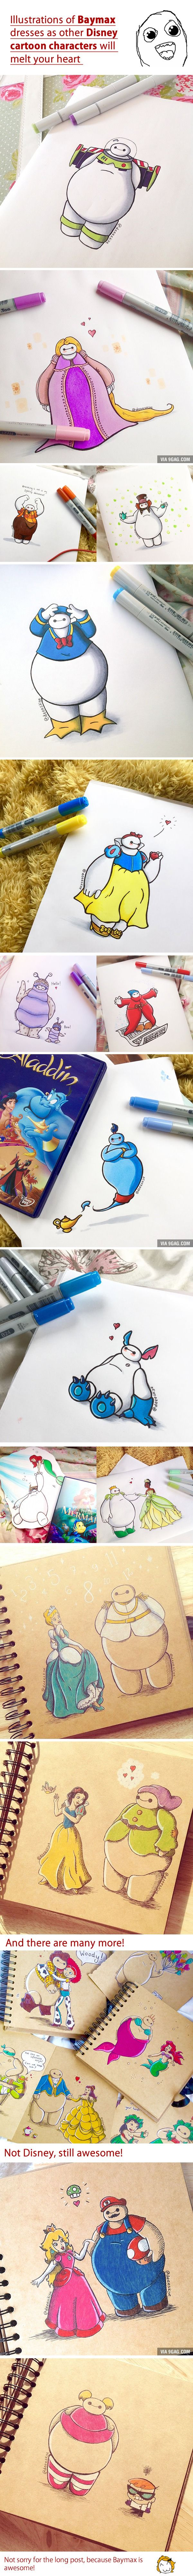 Illustrations of Baymax Dresses as other Disney Cartoon Characters will melt your heart.